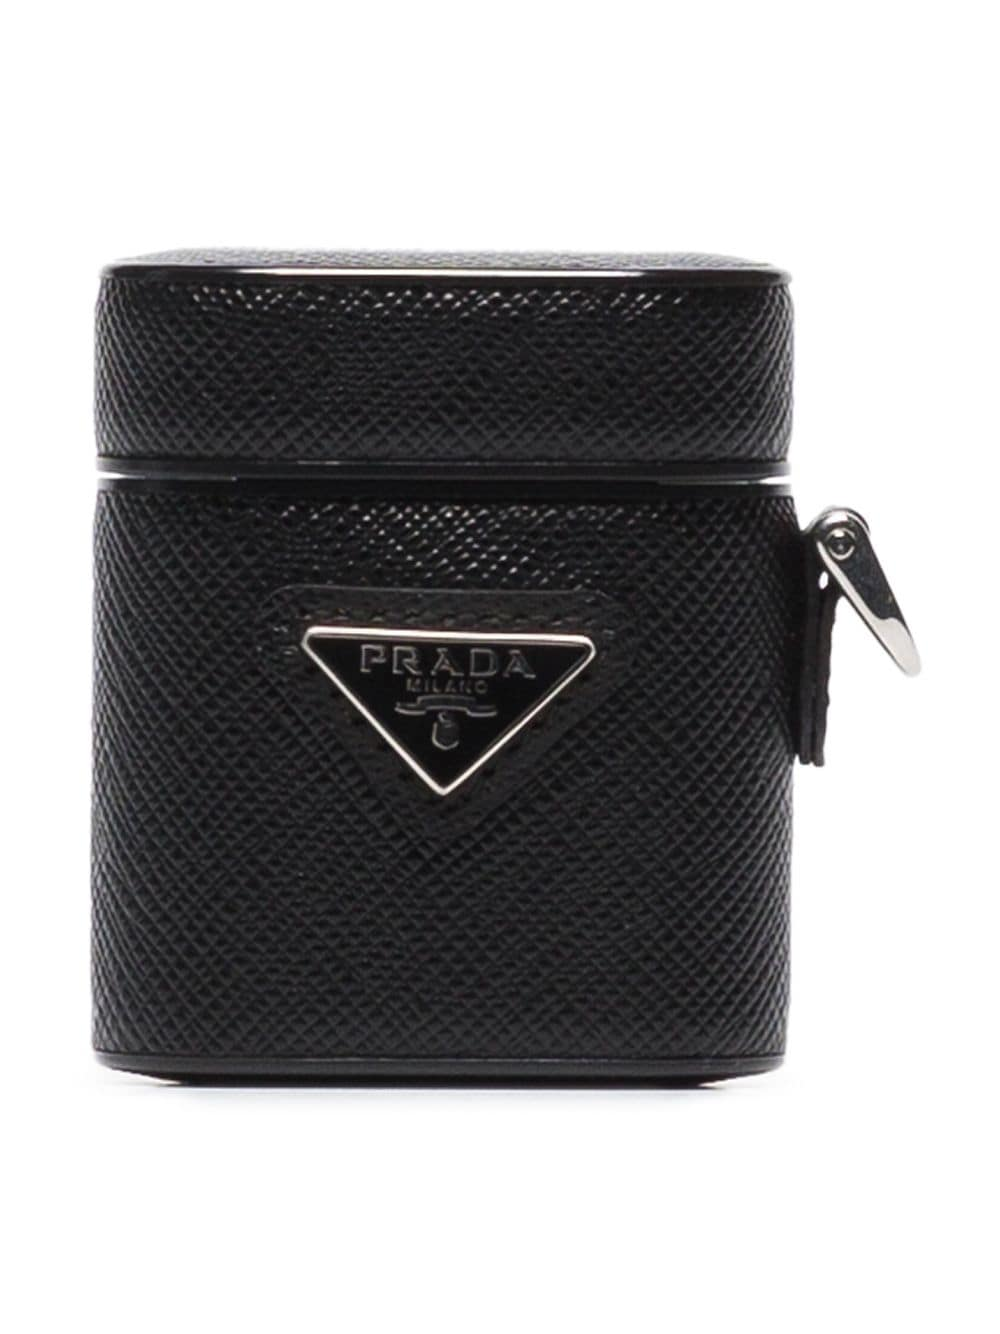 Prada triangle-logo leather AirPods case - Black von Prada